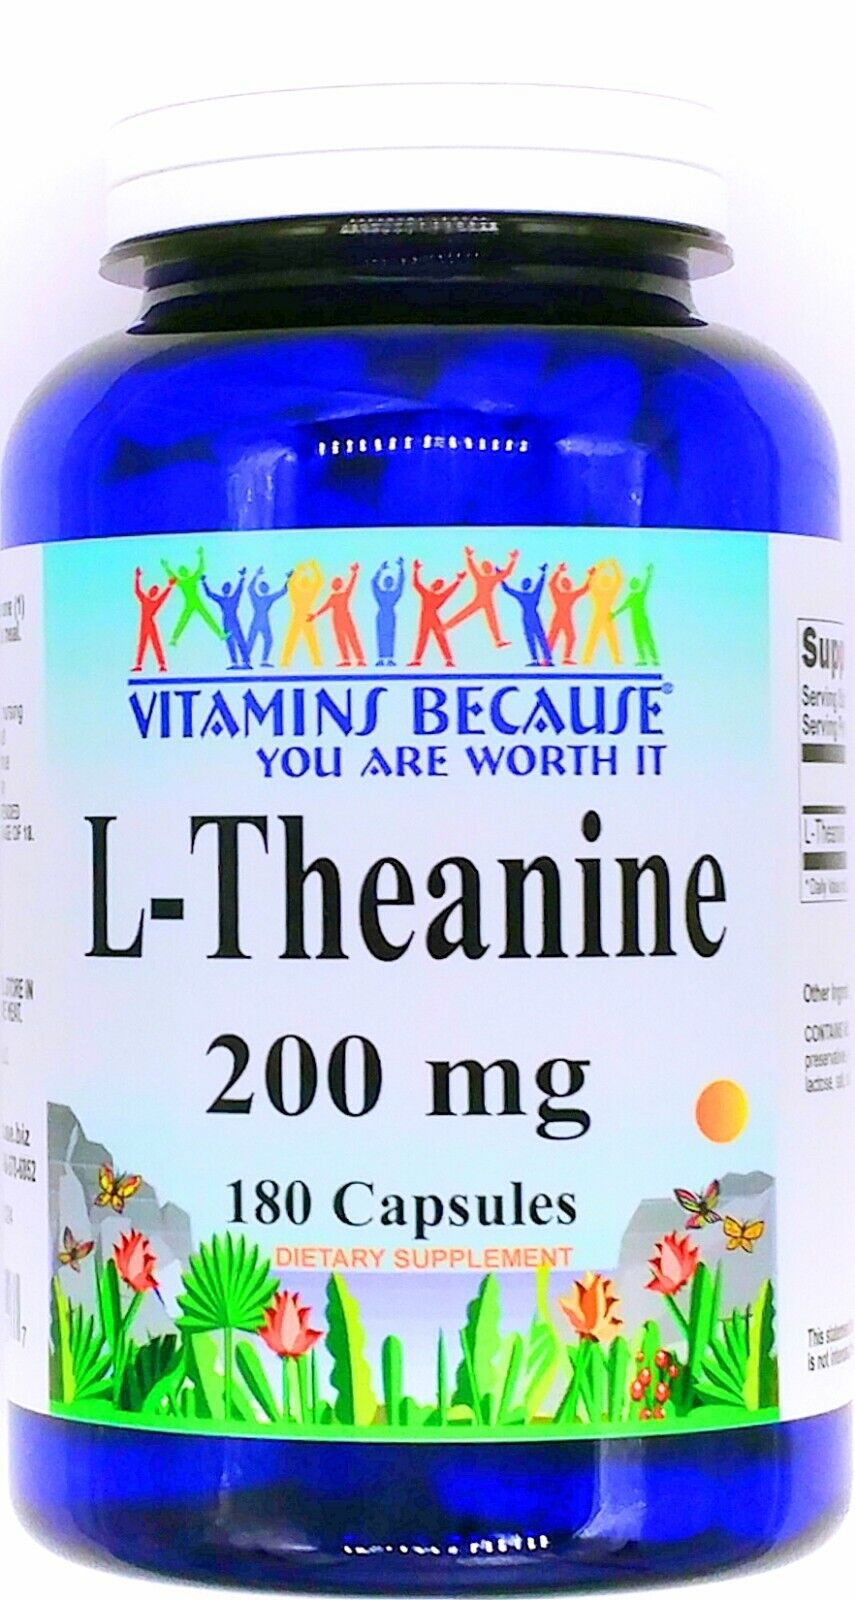 180 Capsules 200mg L Theanine Calming Relaxing Mood Support Supplement Pill VB